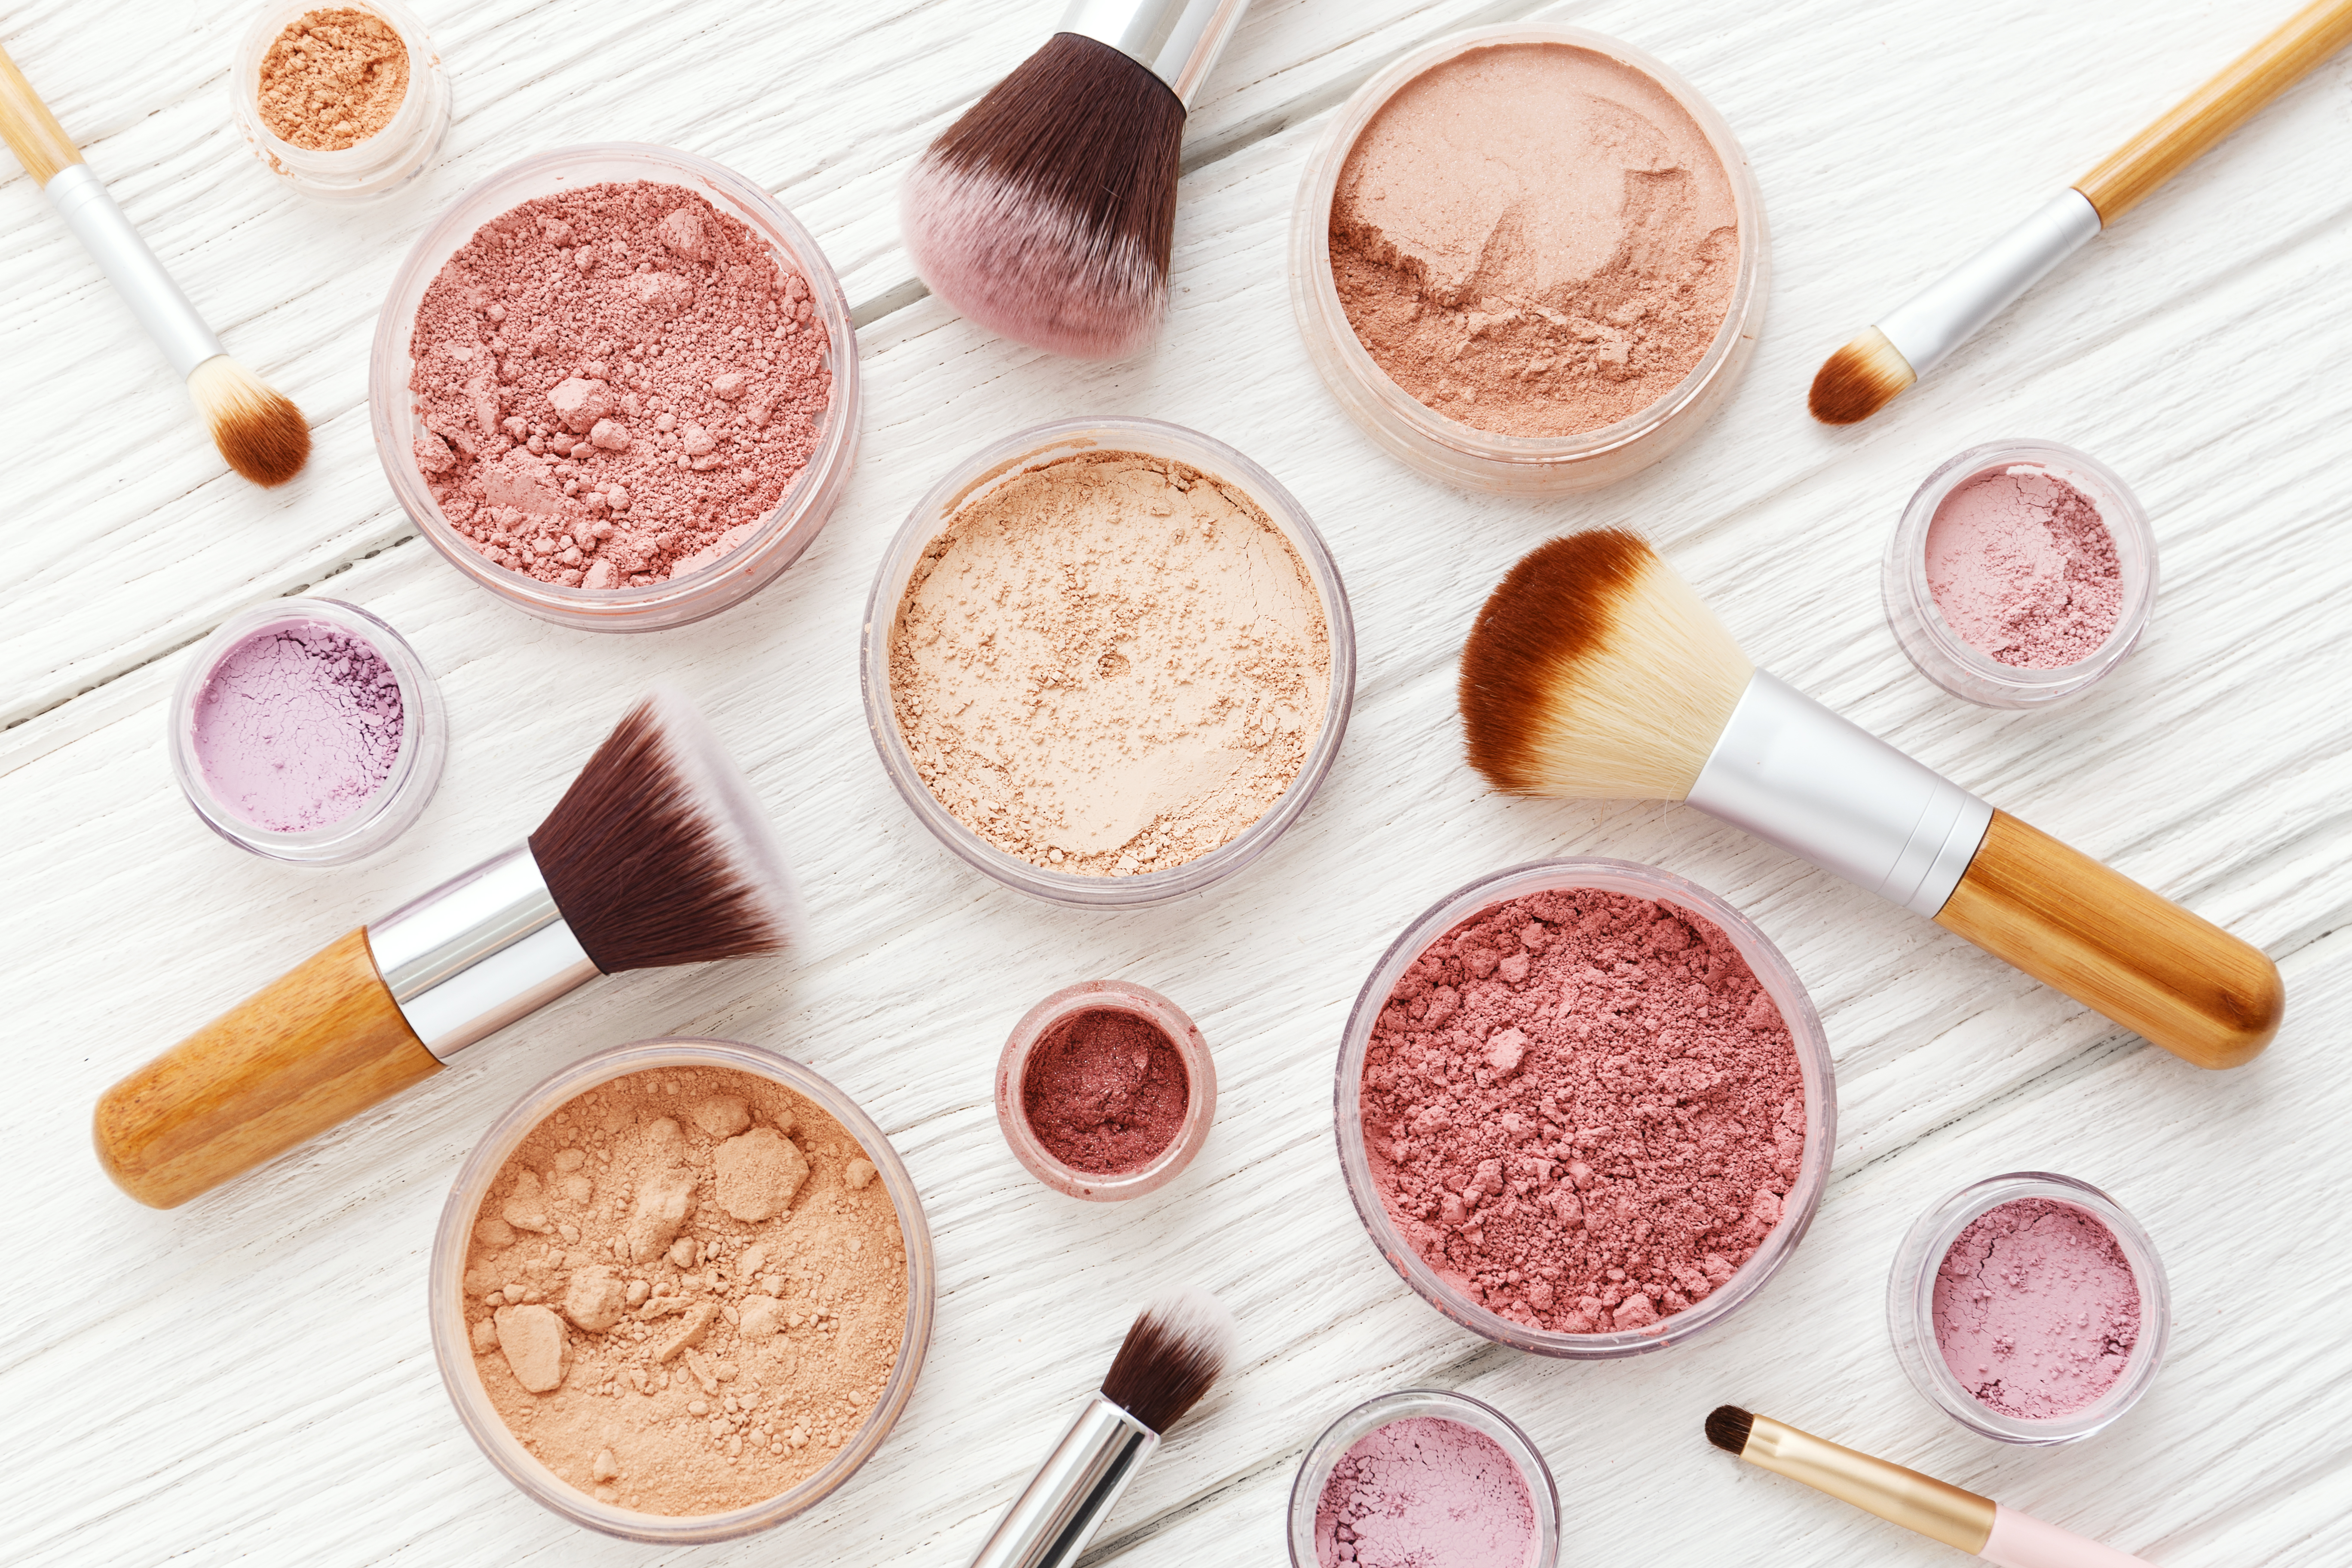 How to Choose the Right Makeup for Your Skin Tone